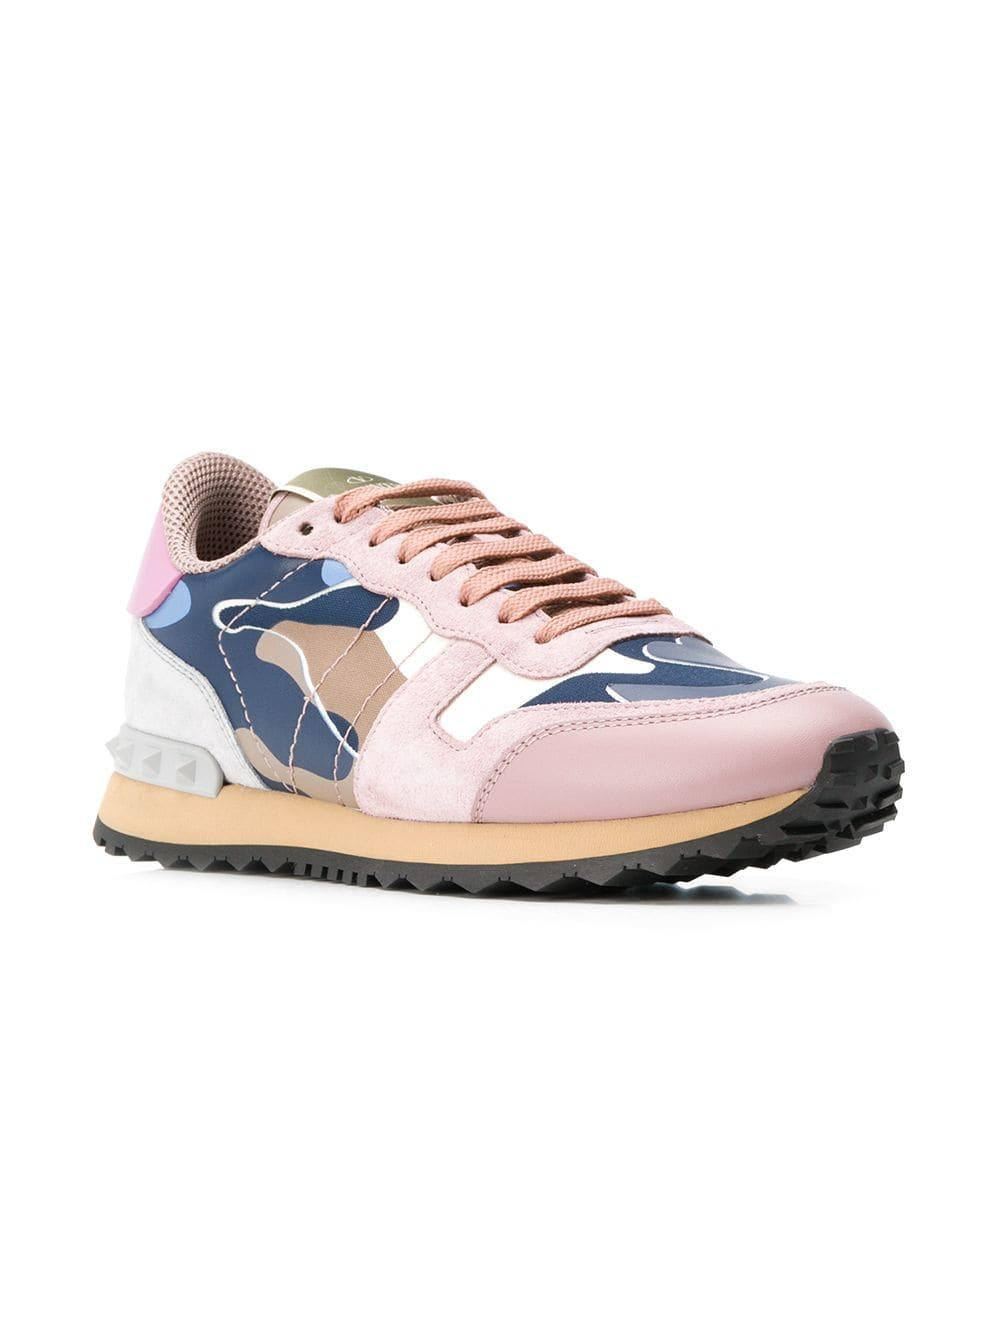 80c70aac5aff3 Valentino Rockrunner Sneakers in White - Lyst